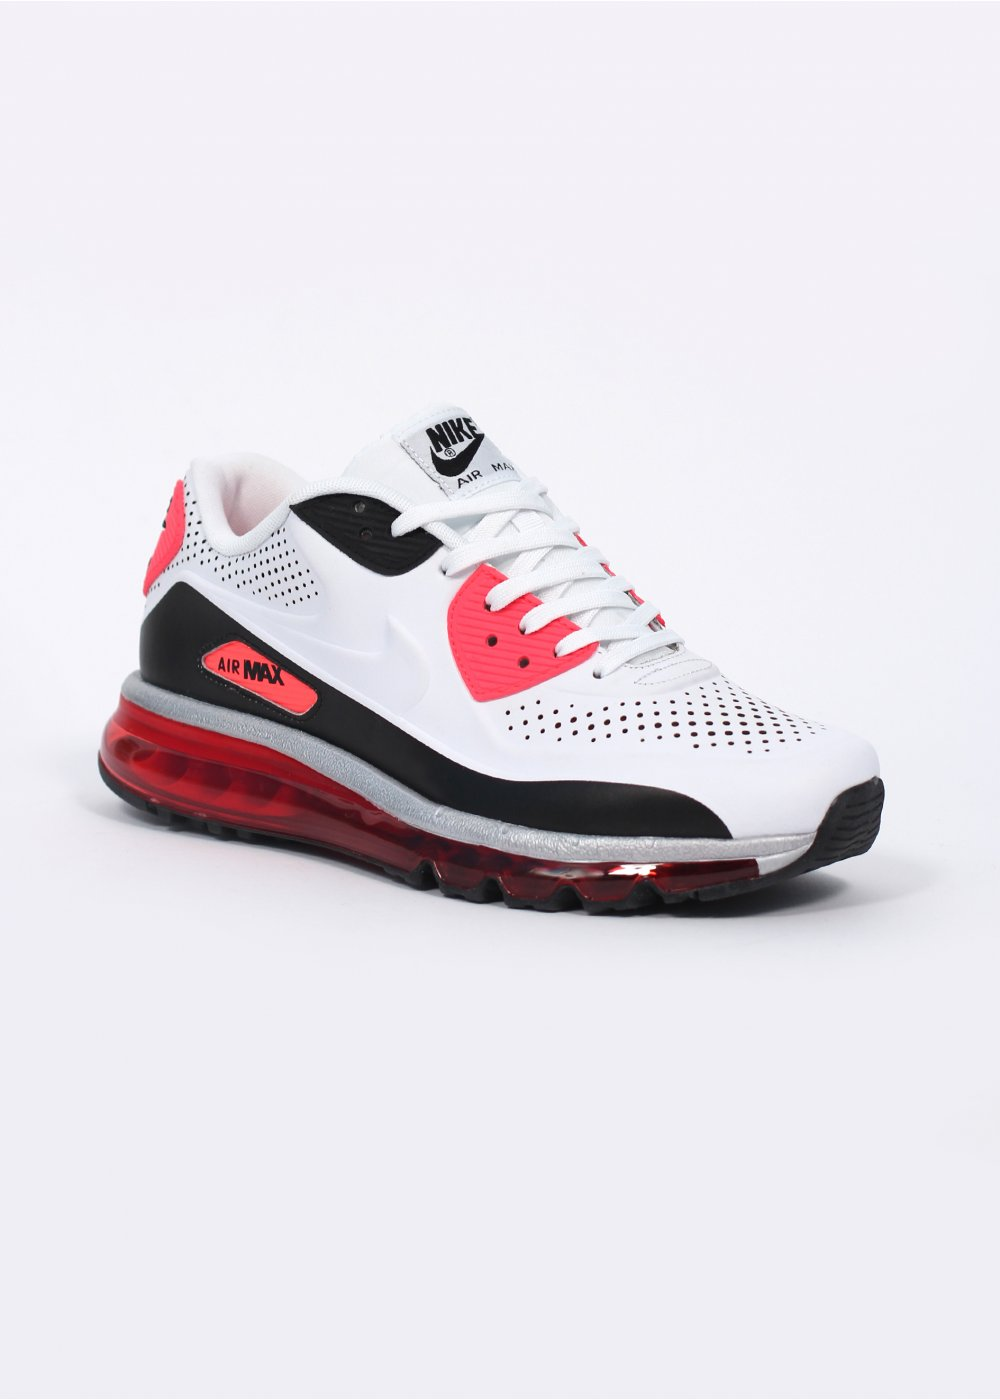 Air Max 90-2014 Ltr Caméra Infrarouge Qs